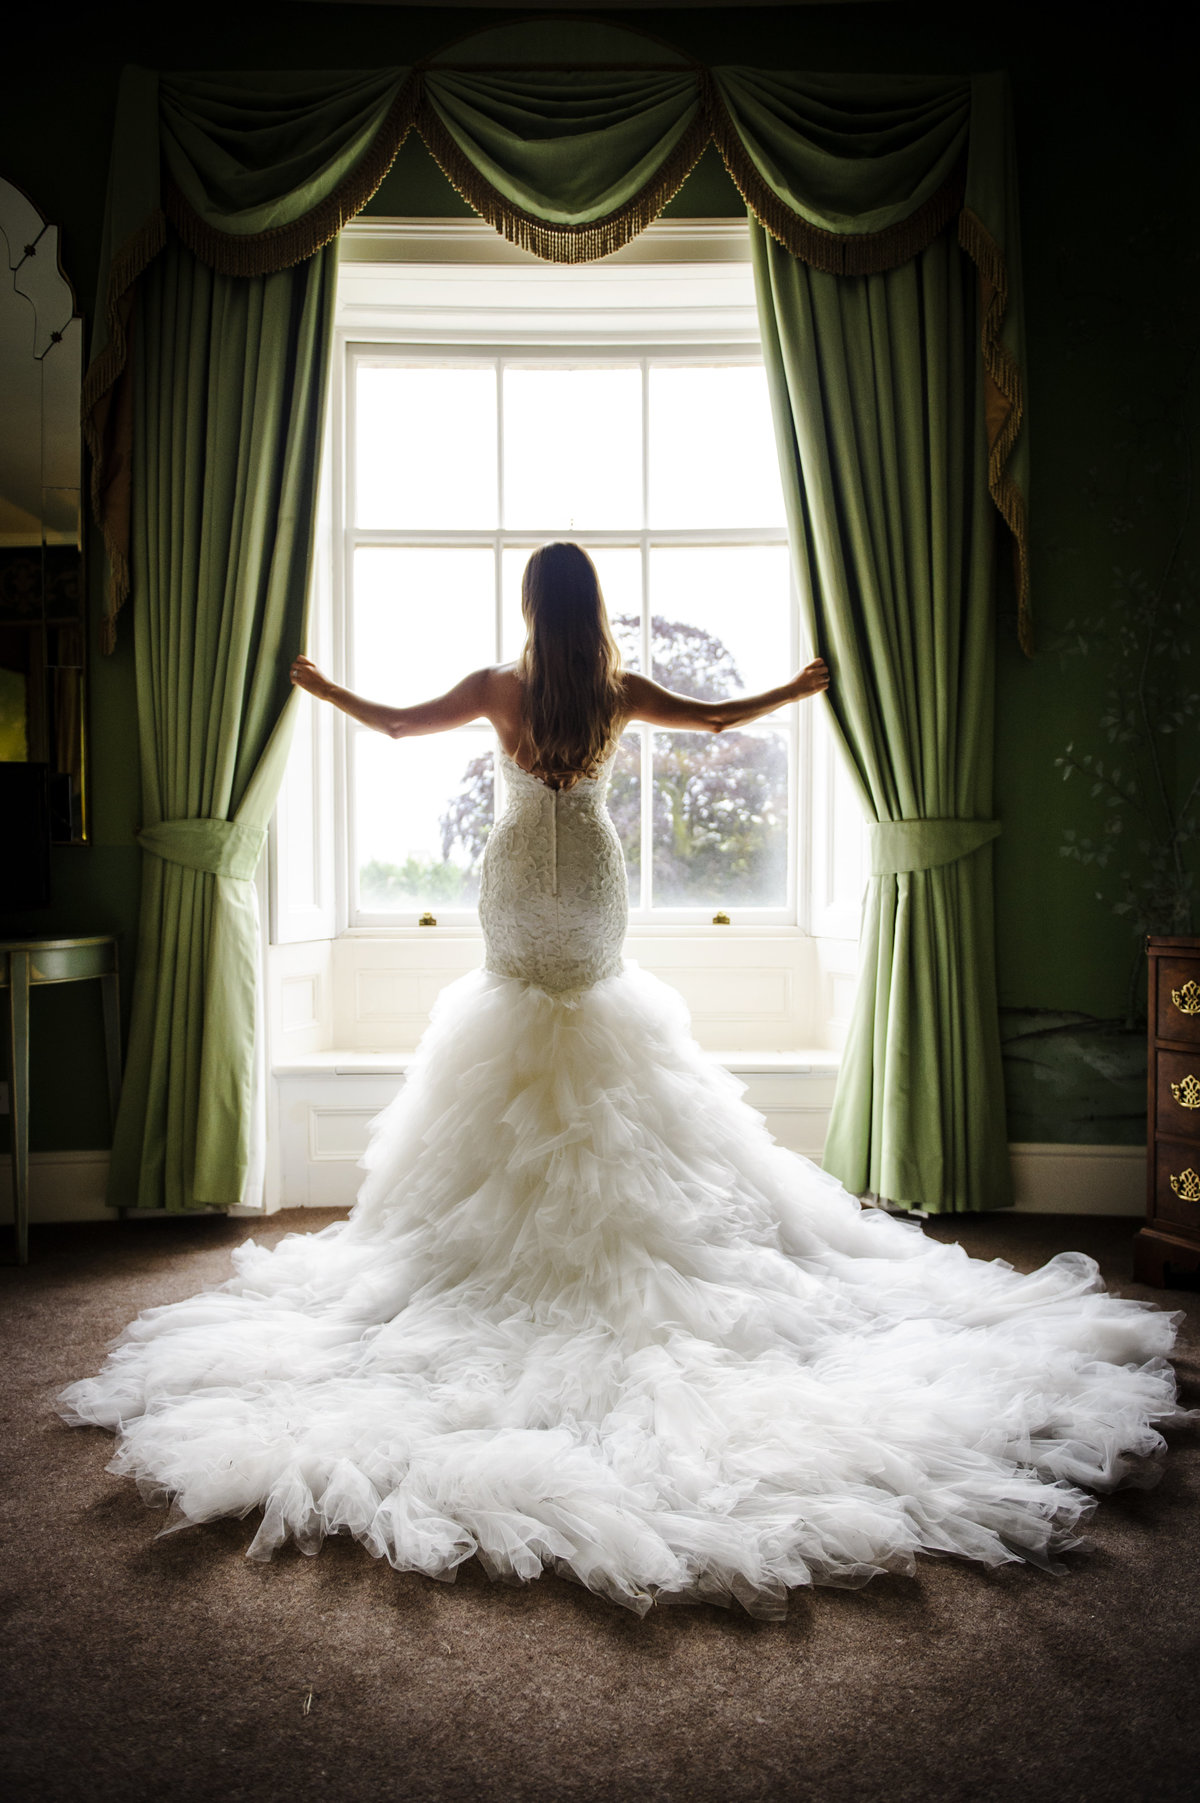 Stubton Hall Wedding Photographer Ross Holkham-44